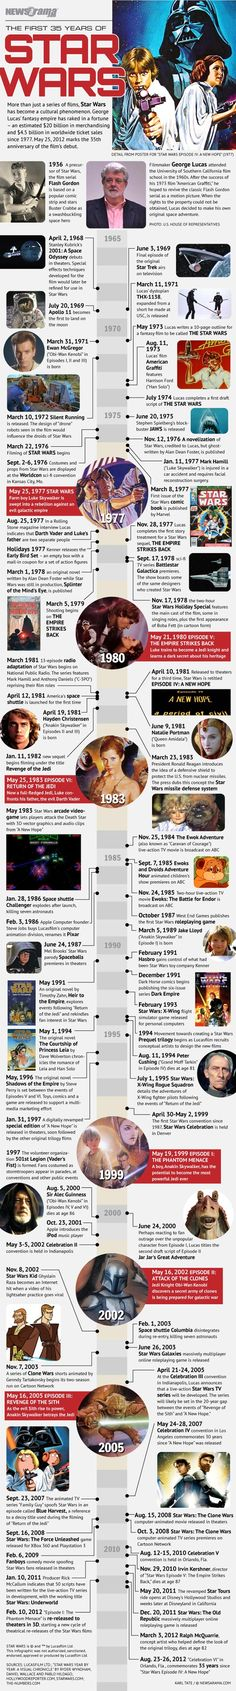 35 Years of Star Wars. AnInfographic...